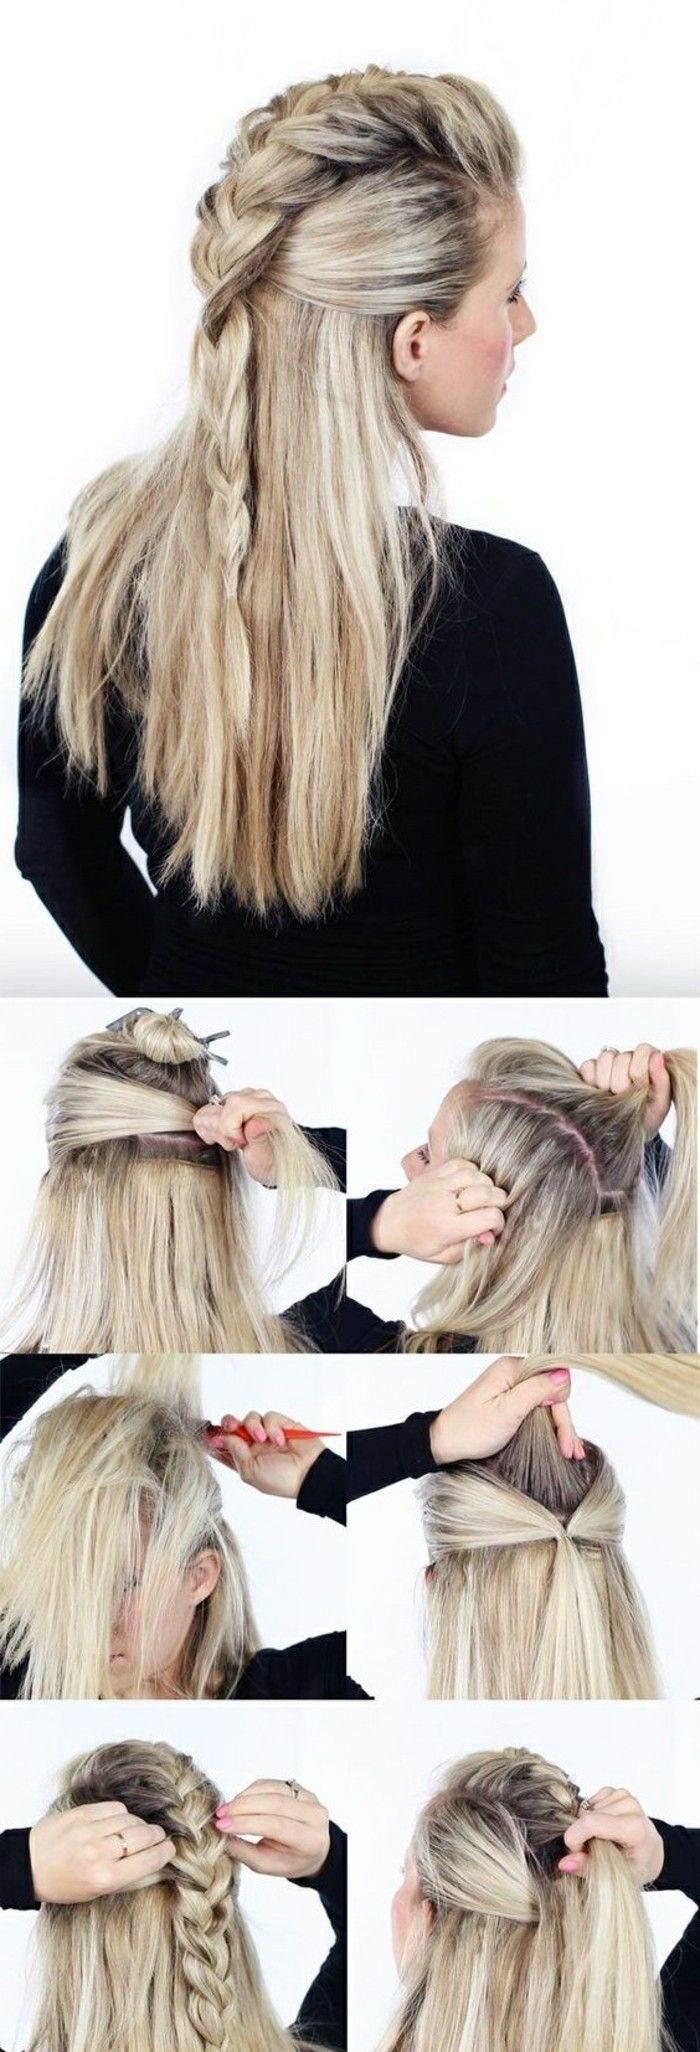 ? 1001 + ideas for beautiful hairstyles + DIY instructions